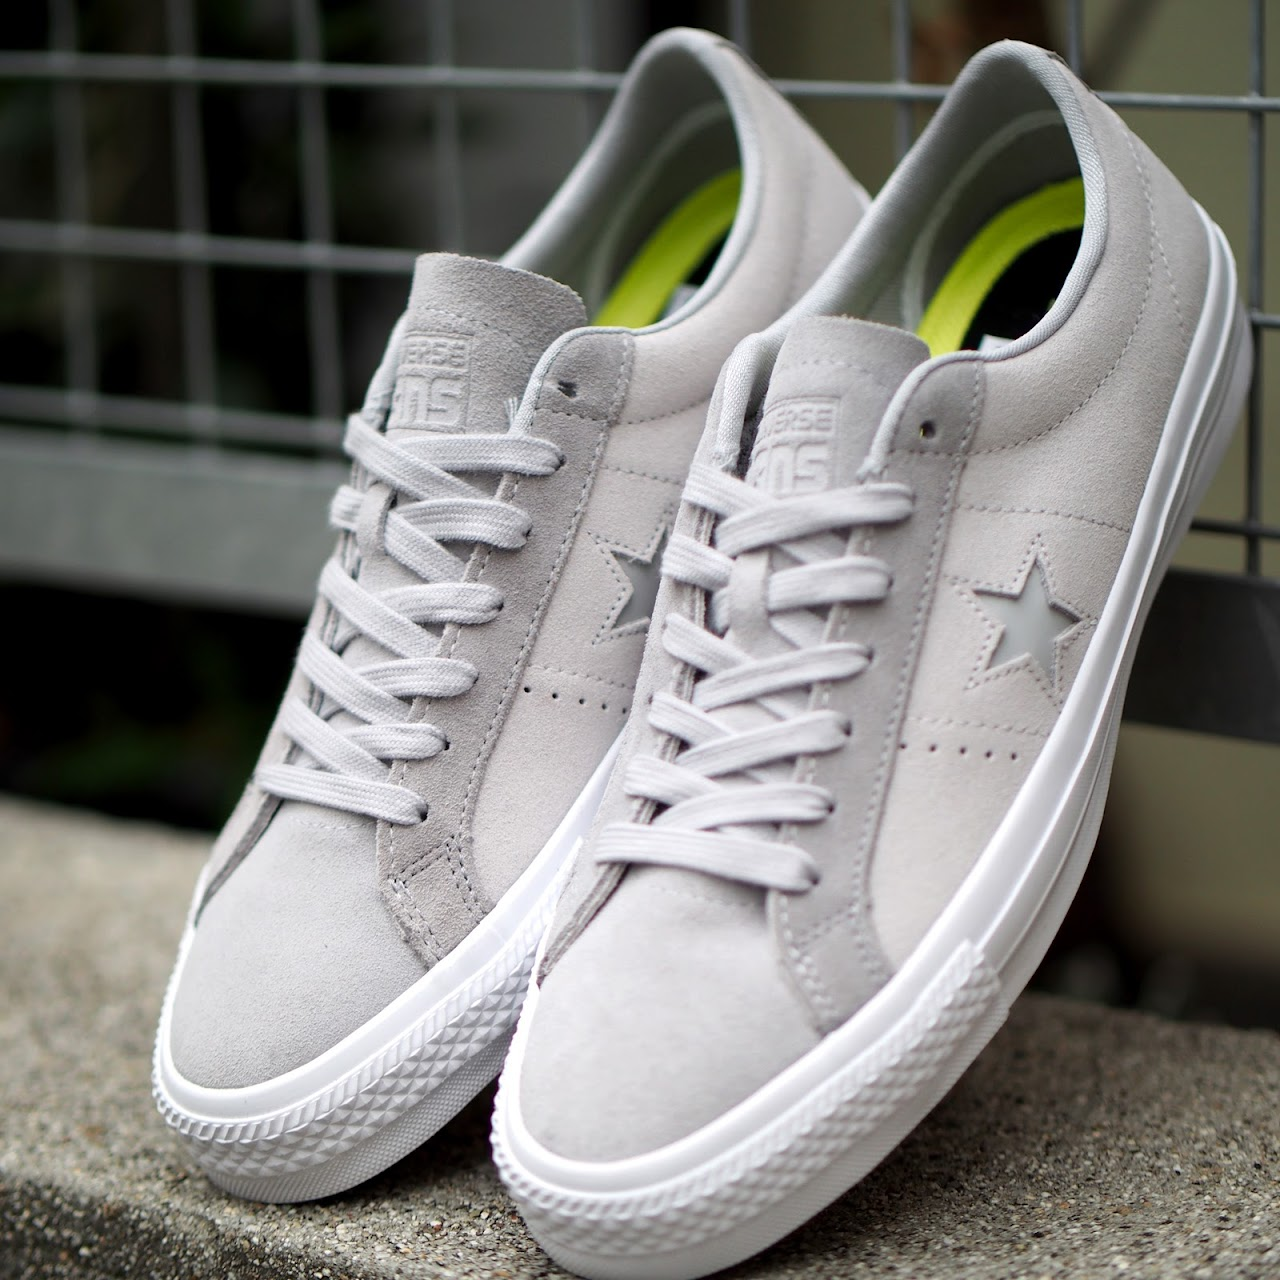 Converse / Cons One Star Pro OX